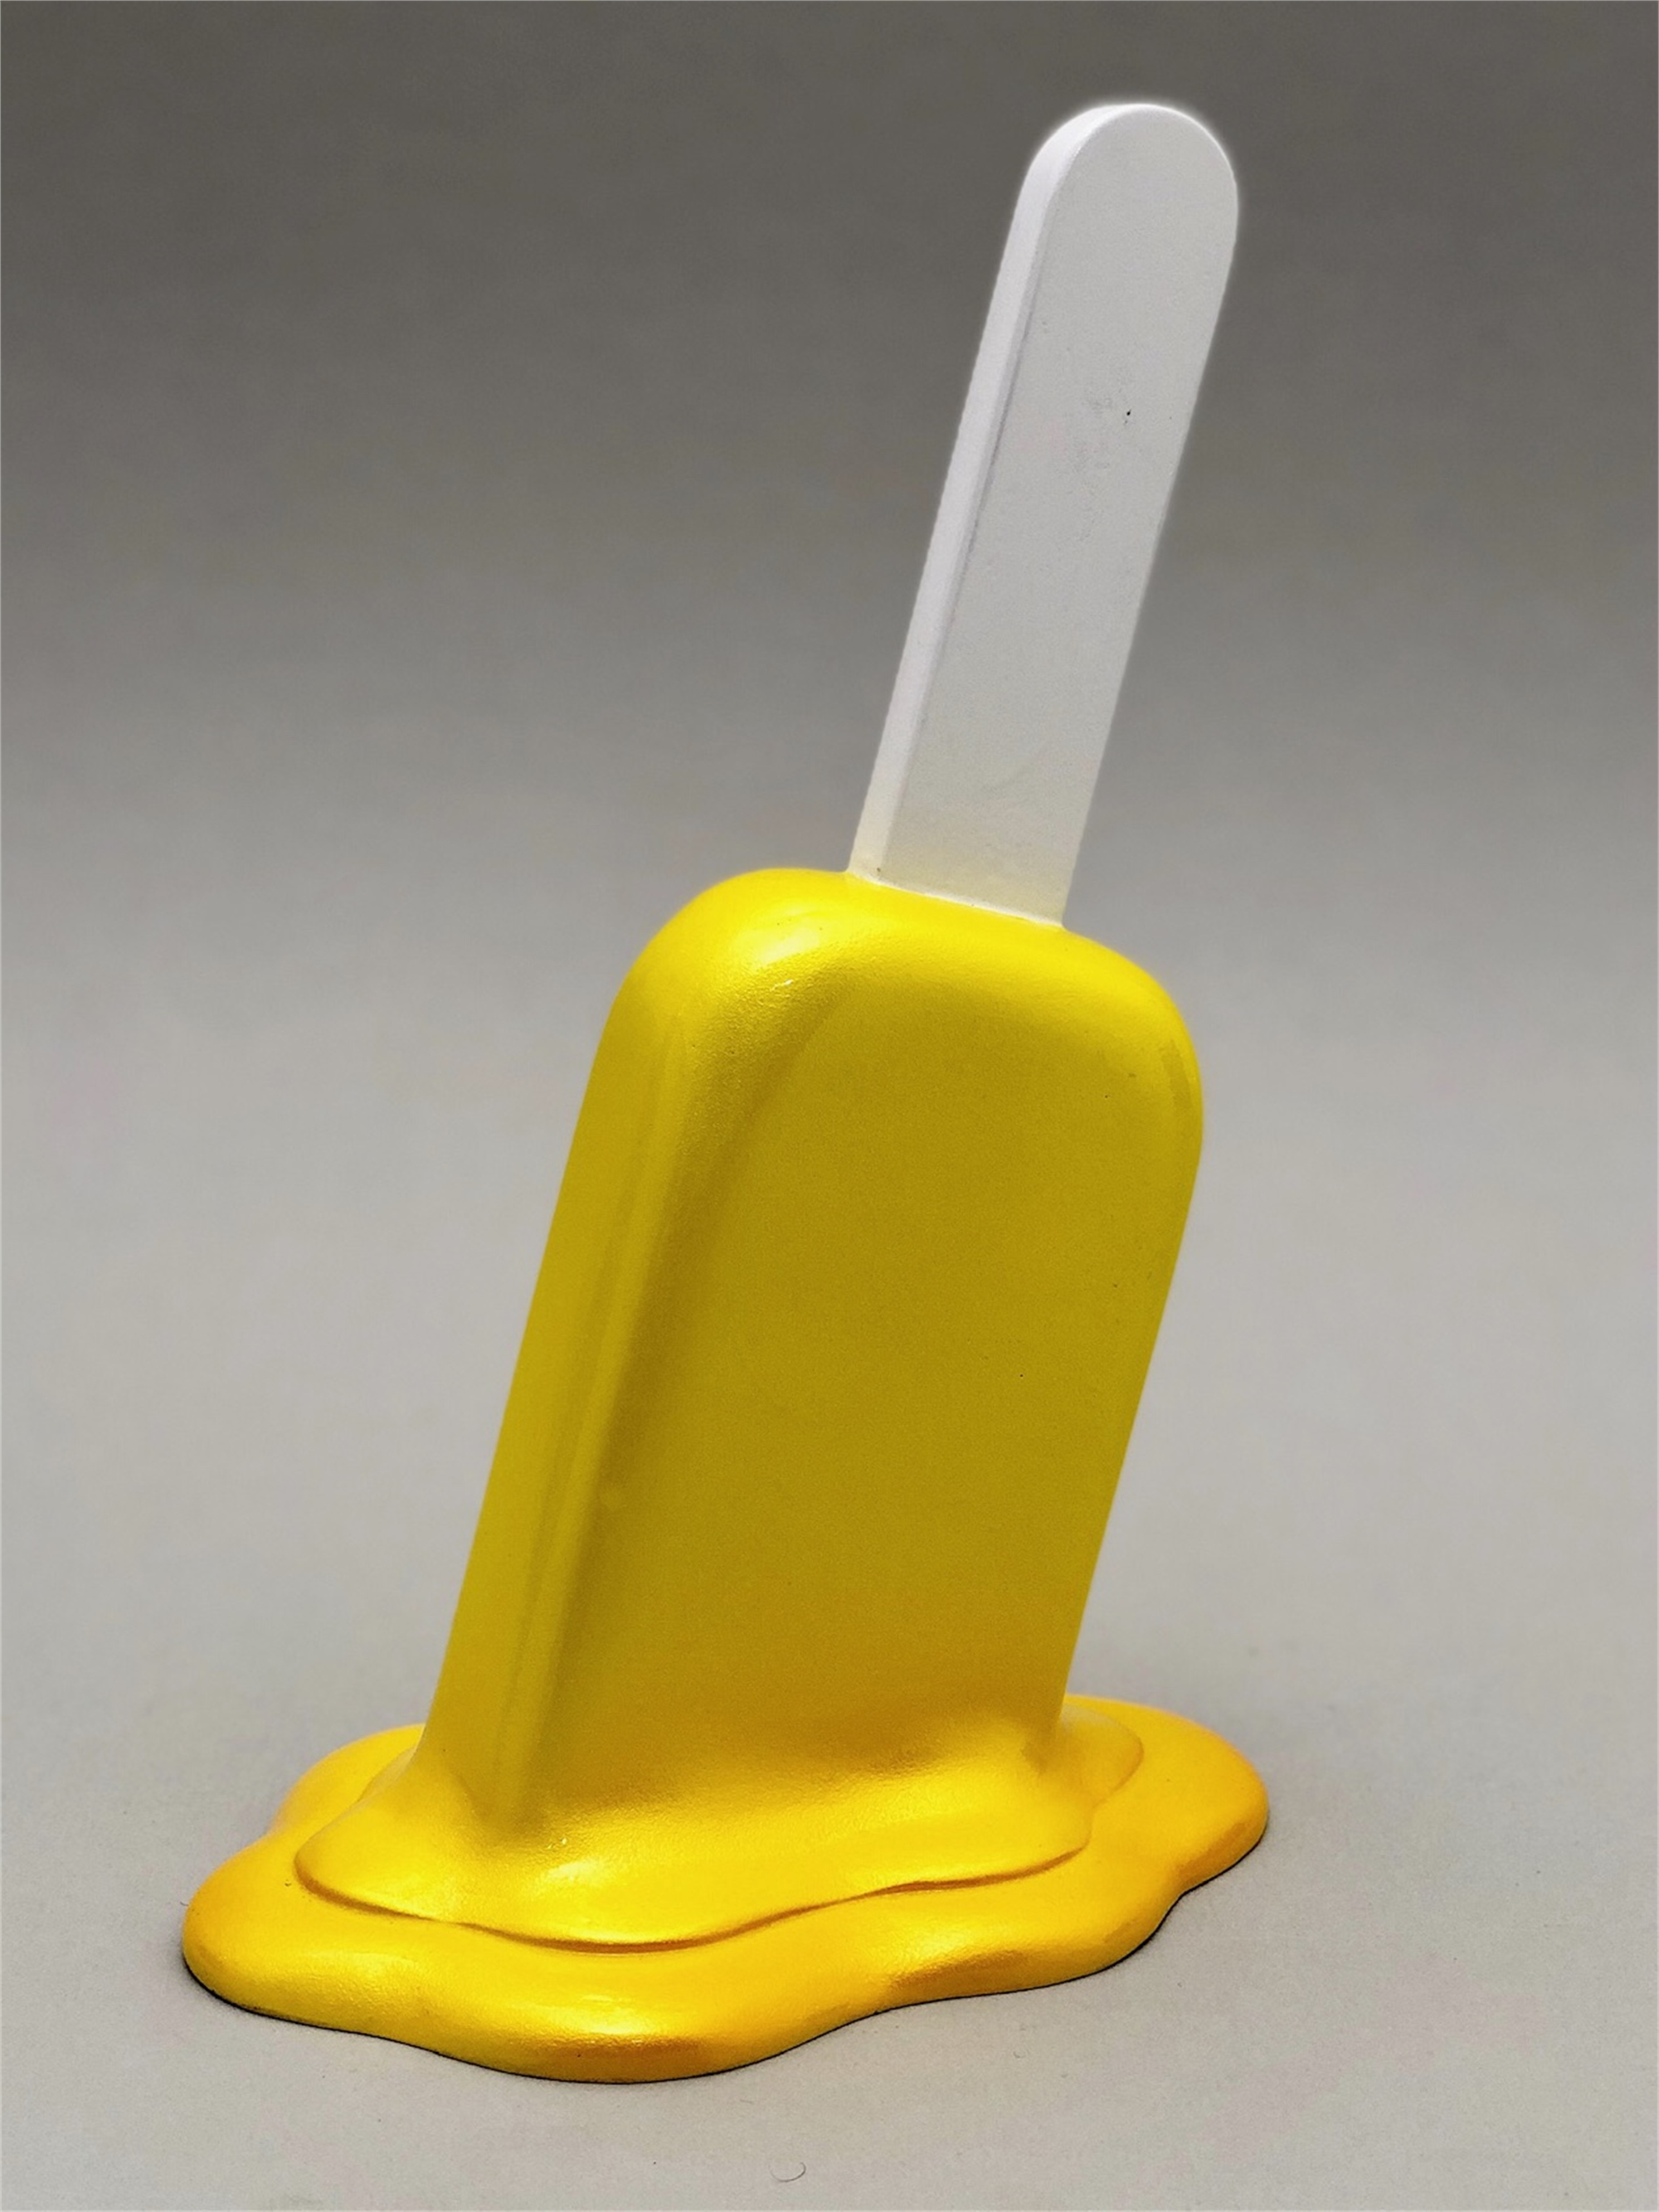 The Sweet Life, small, yellow Popsicle by Elena Bulatova